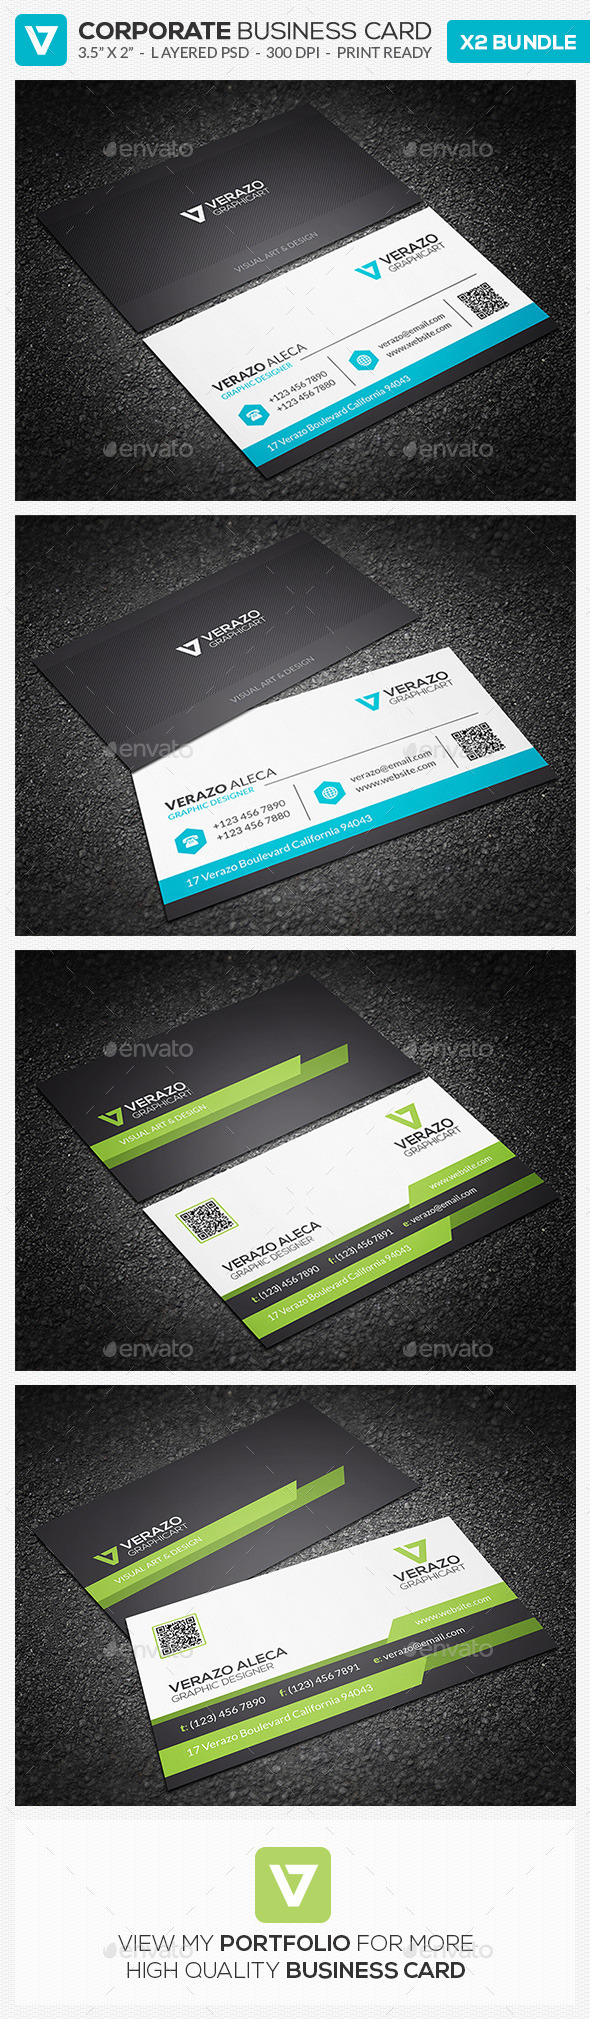 Business Card Bundle 11 - Corporate Business Cards